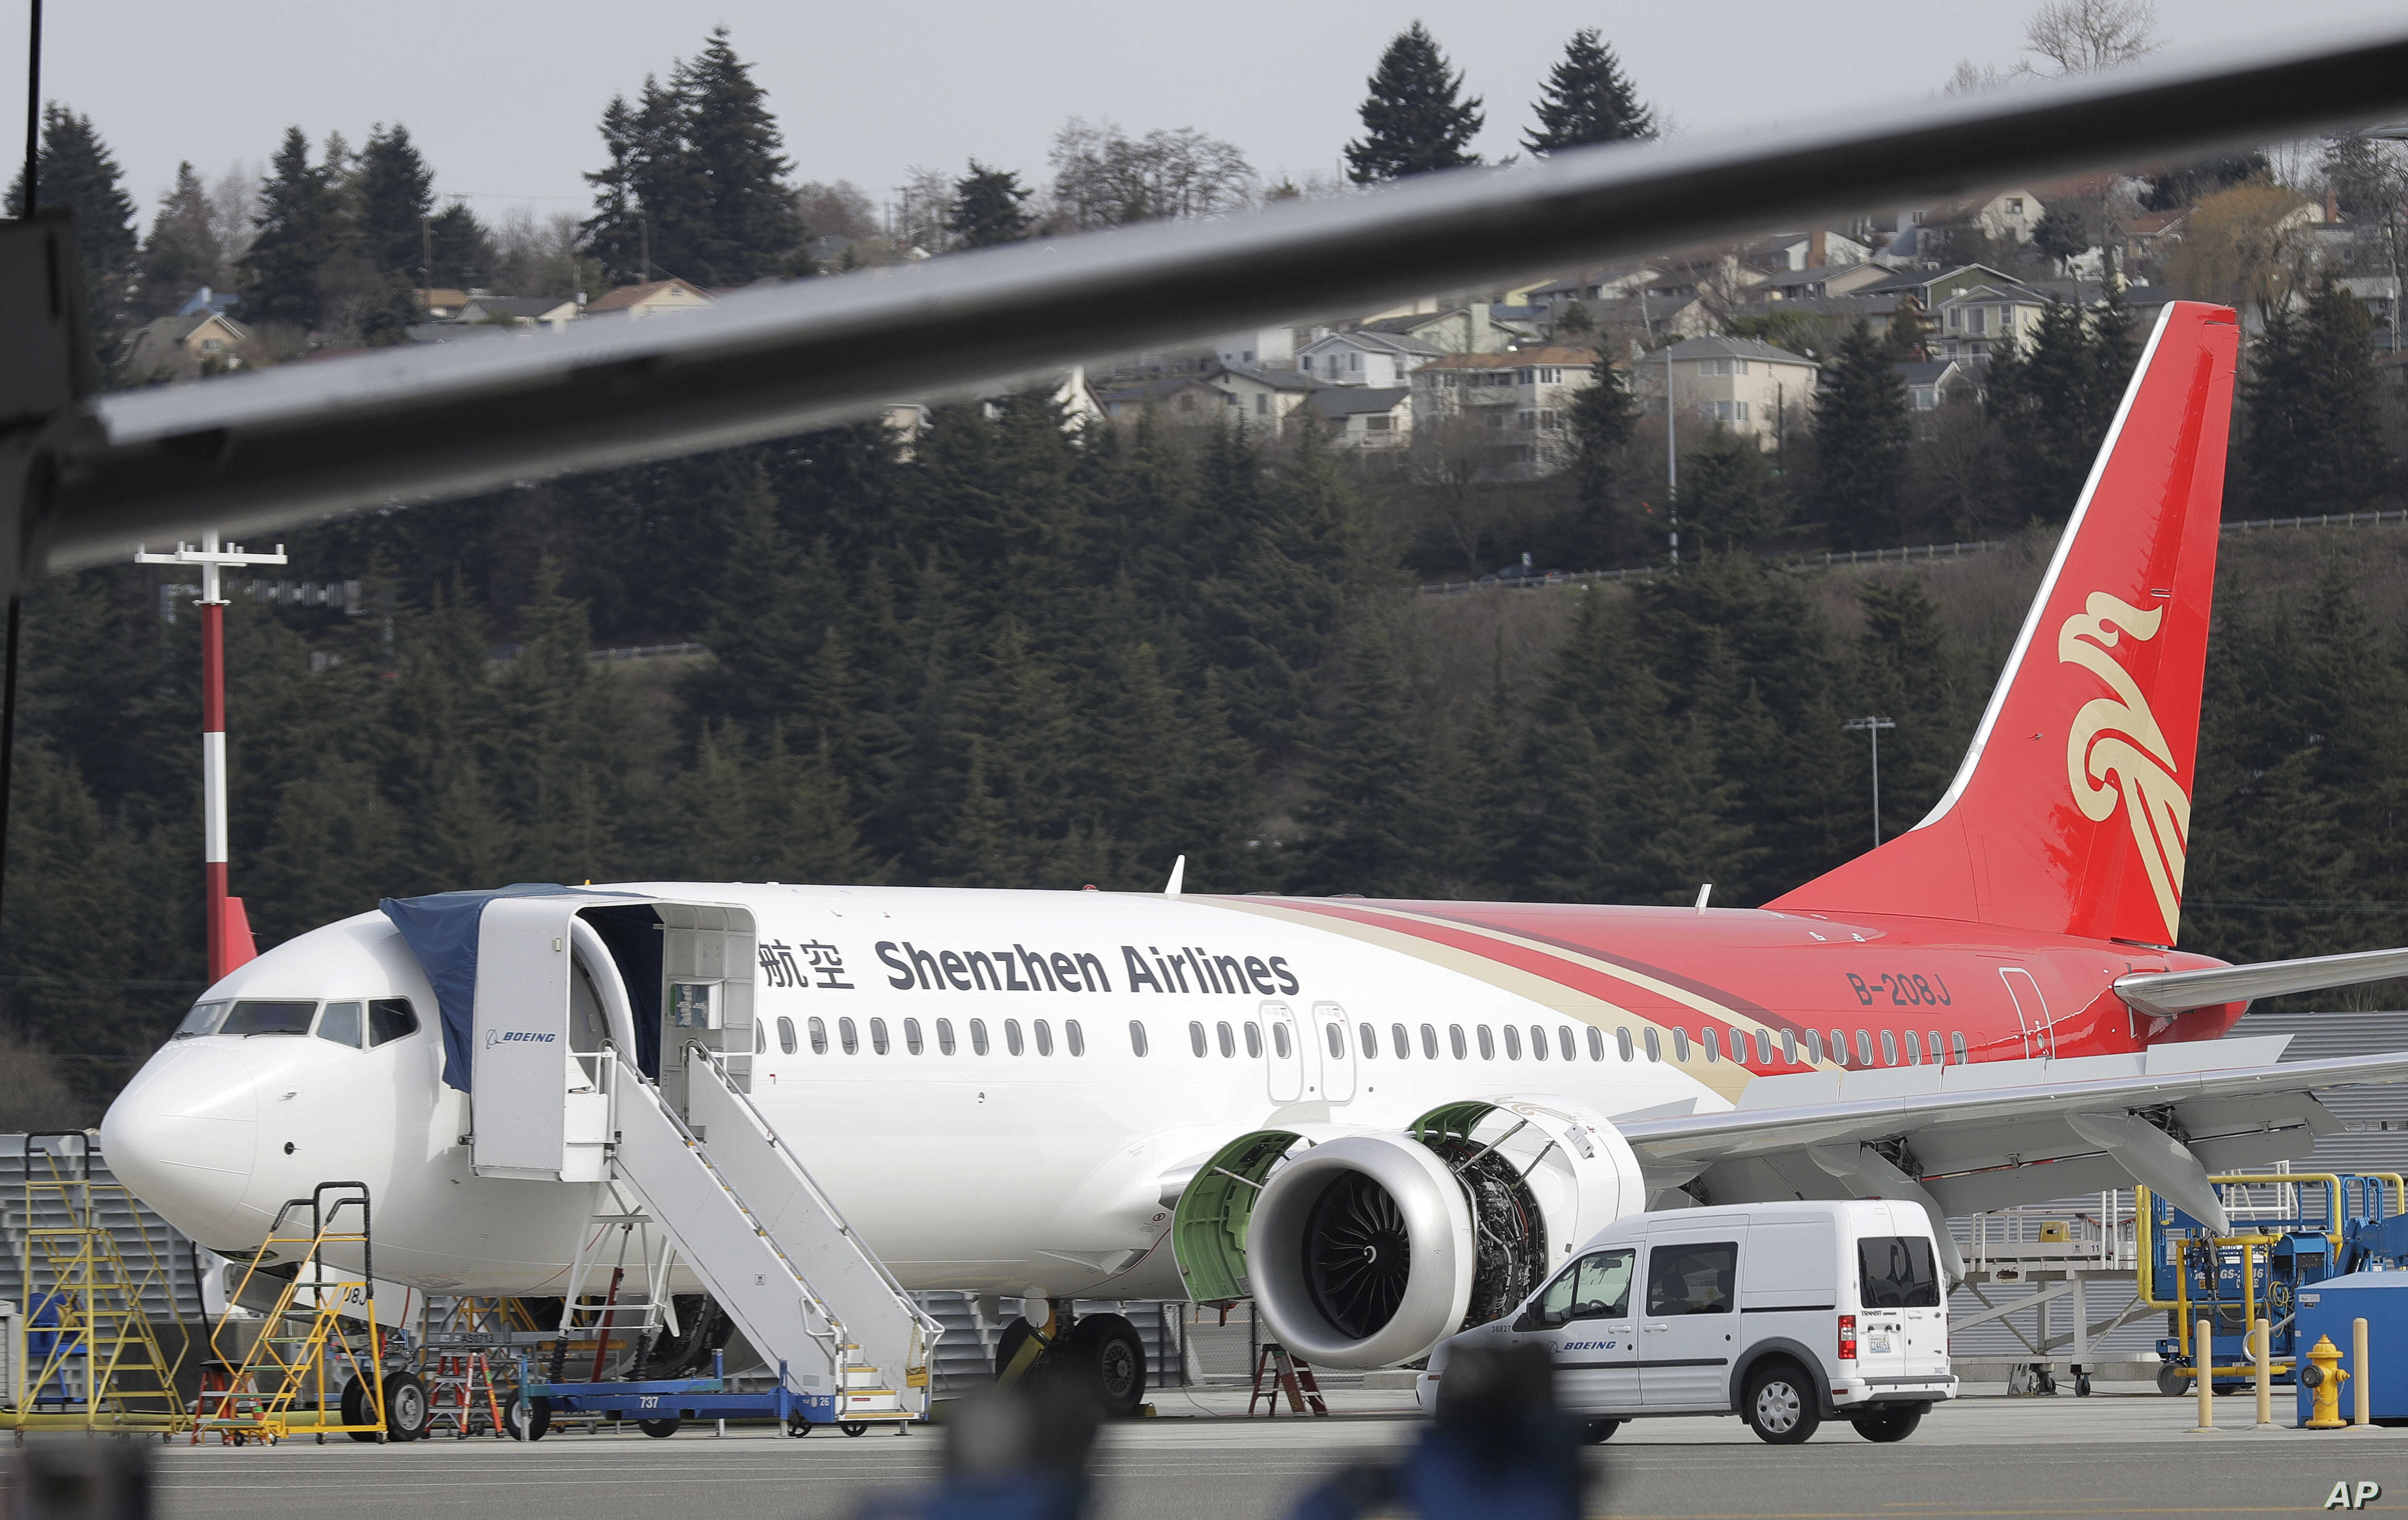 European, Canadian to Review Boeing 737 Max | Voice of